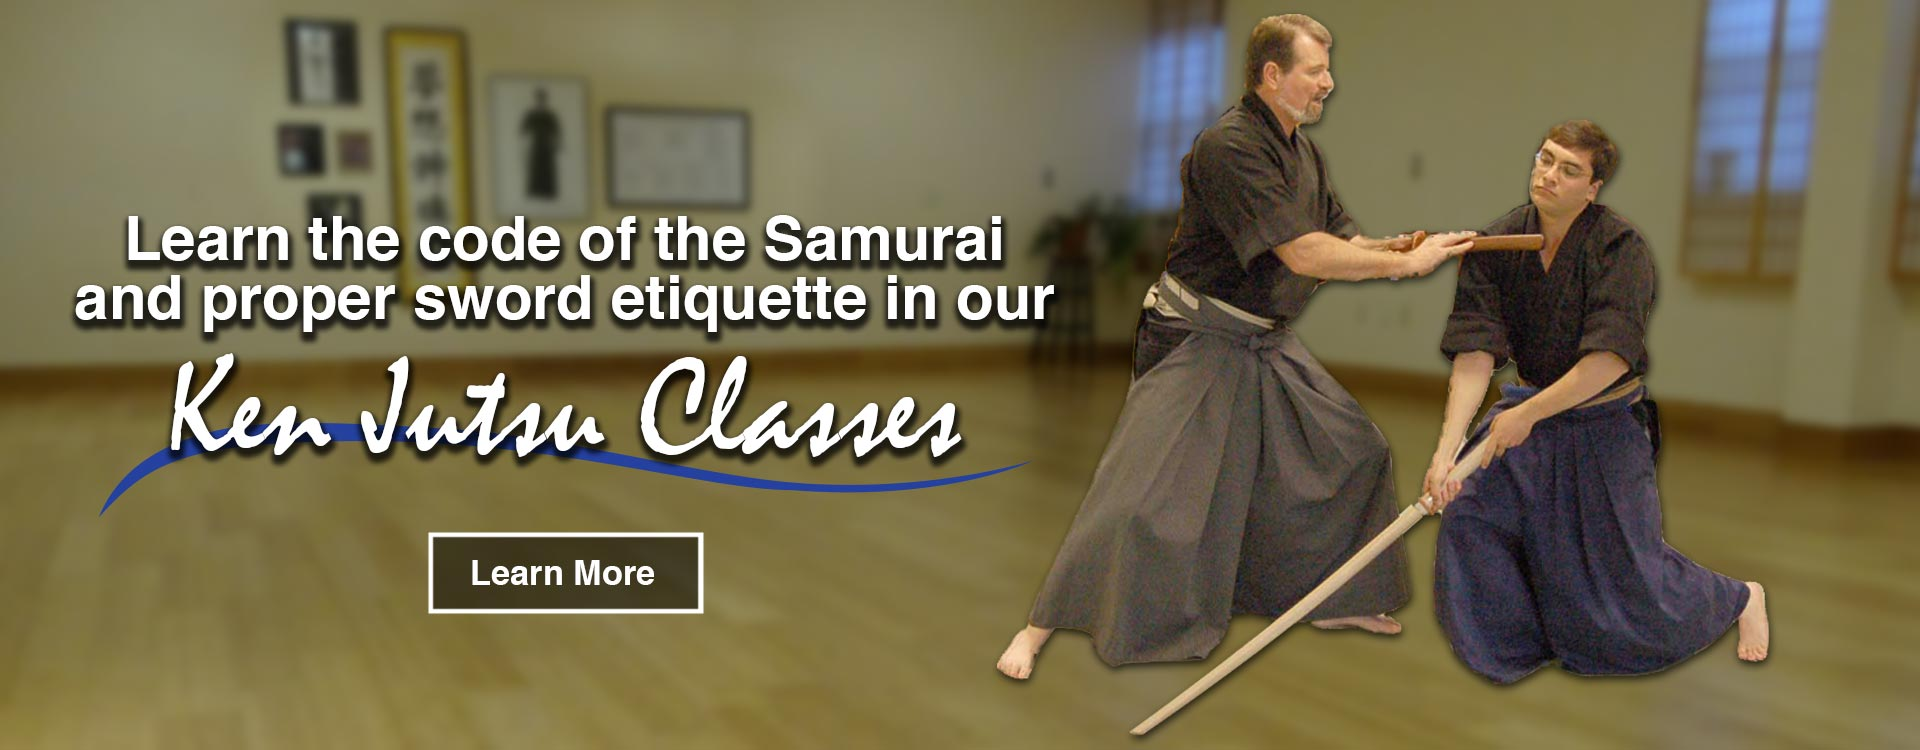 River Of Life Martial Arts Center Fort Washington Aiki Jujutsu Fort Washington Aiki Jujutsu Pa Aiki Jujutsu Fort Washington Pennsylvania Aiki Jujutsu 19034 19048 19049 39 2